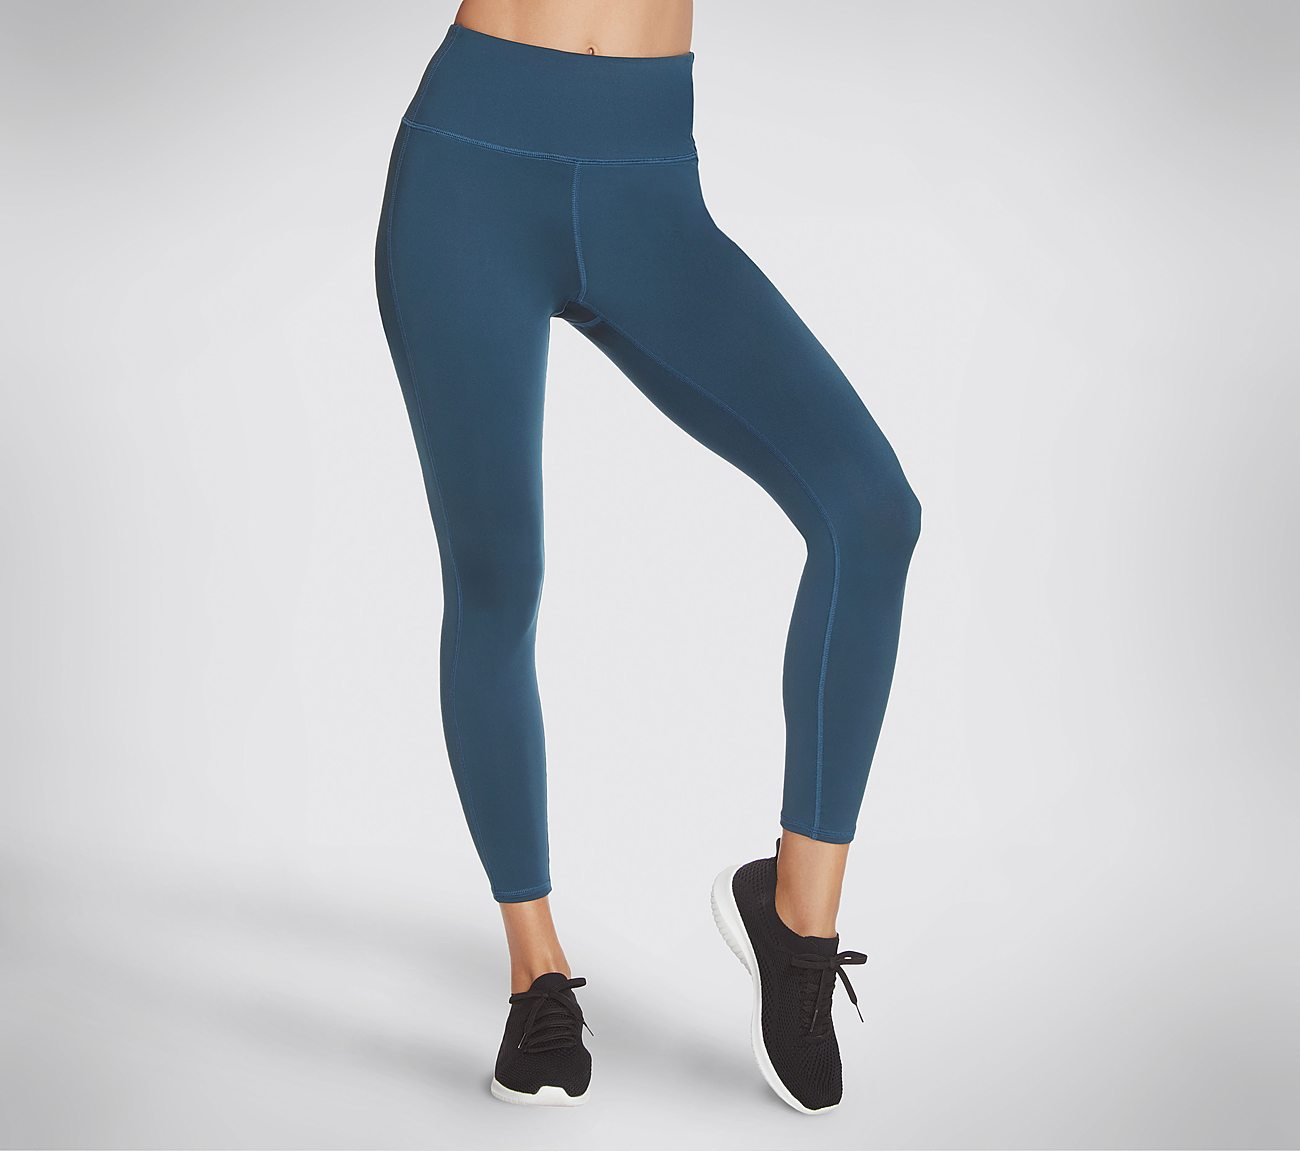 Skechers Apparel Passage High Waisted Legging